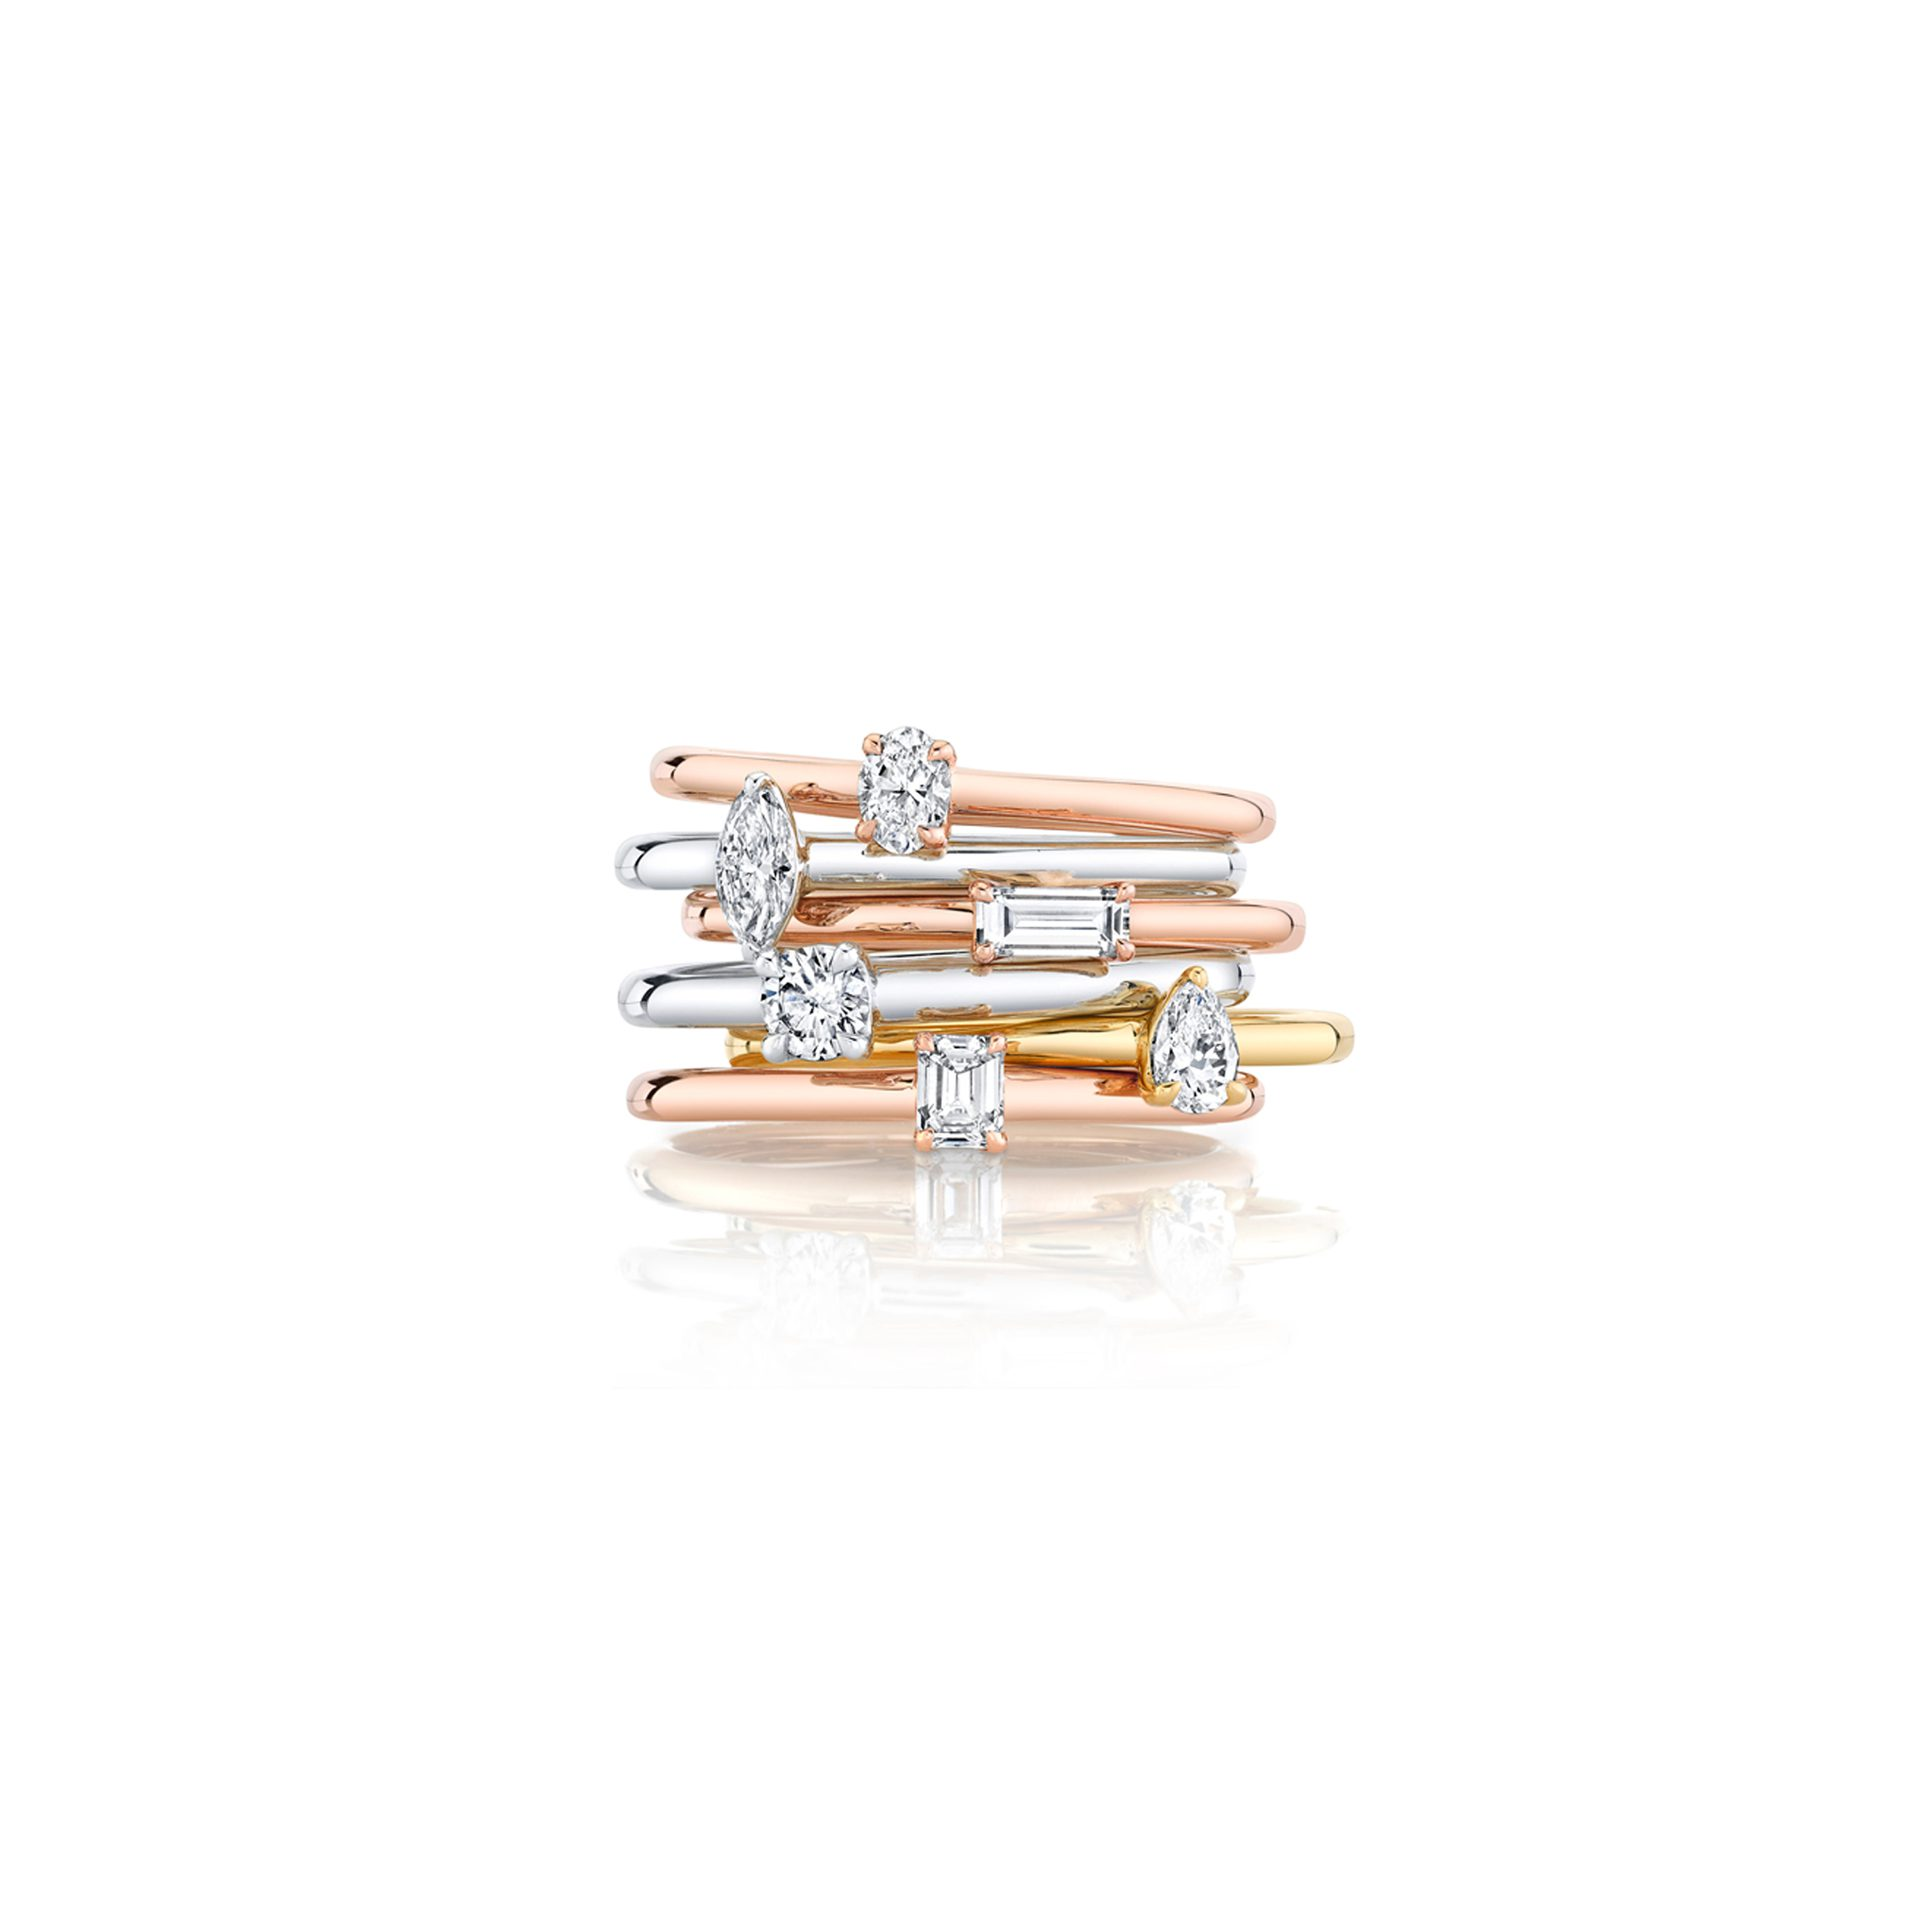 Le Petite Diamond Wedding Bands Stack of Rings by Oui by Jean Dousset